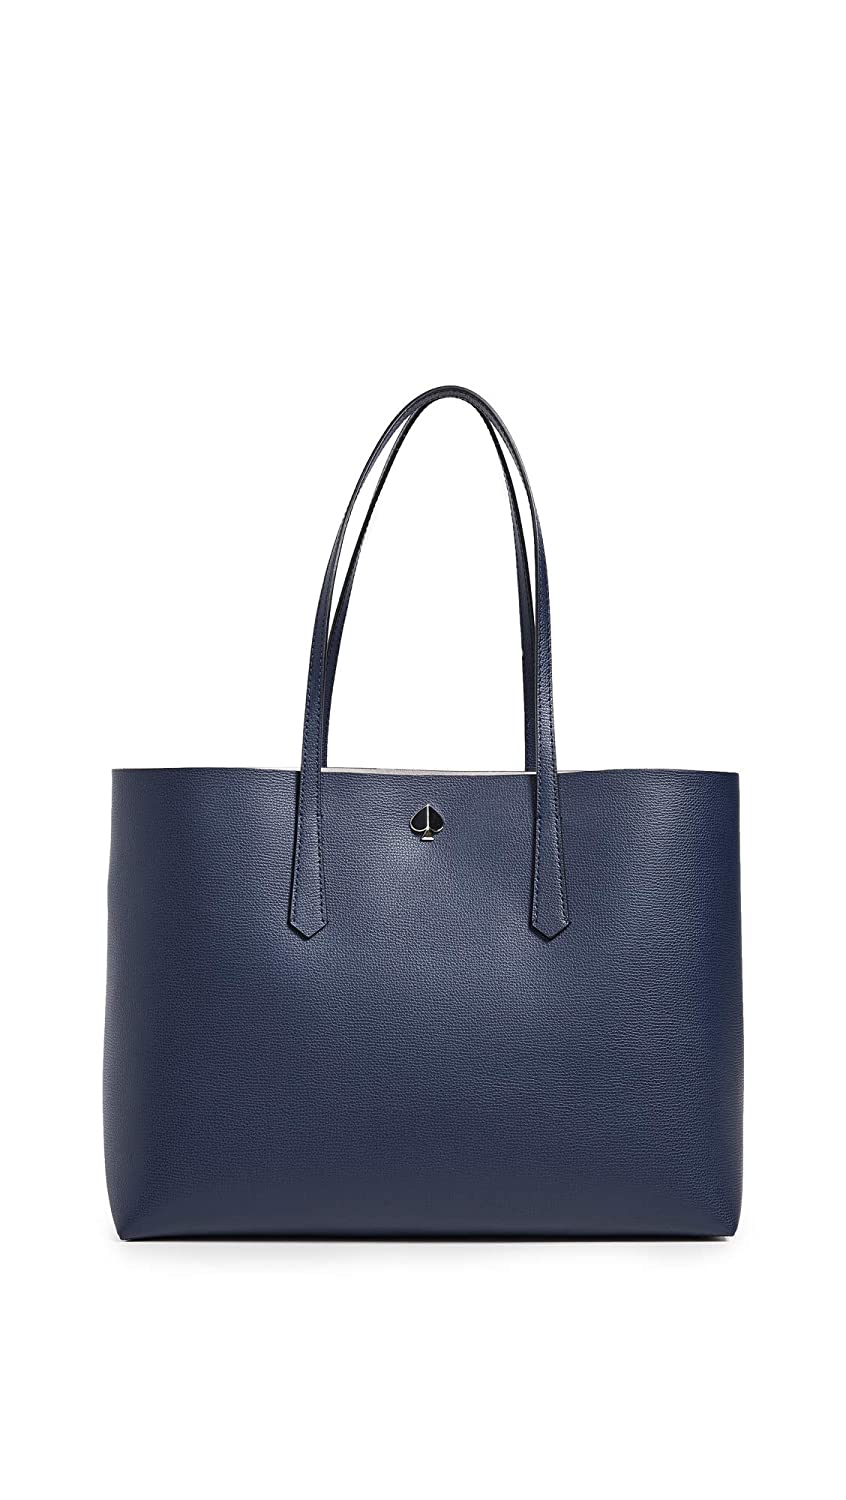 Kate Spade Women's Large Molly Tote Top-Handle Bag B07QK1HRB6 Blazer Blue